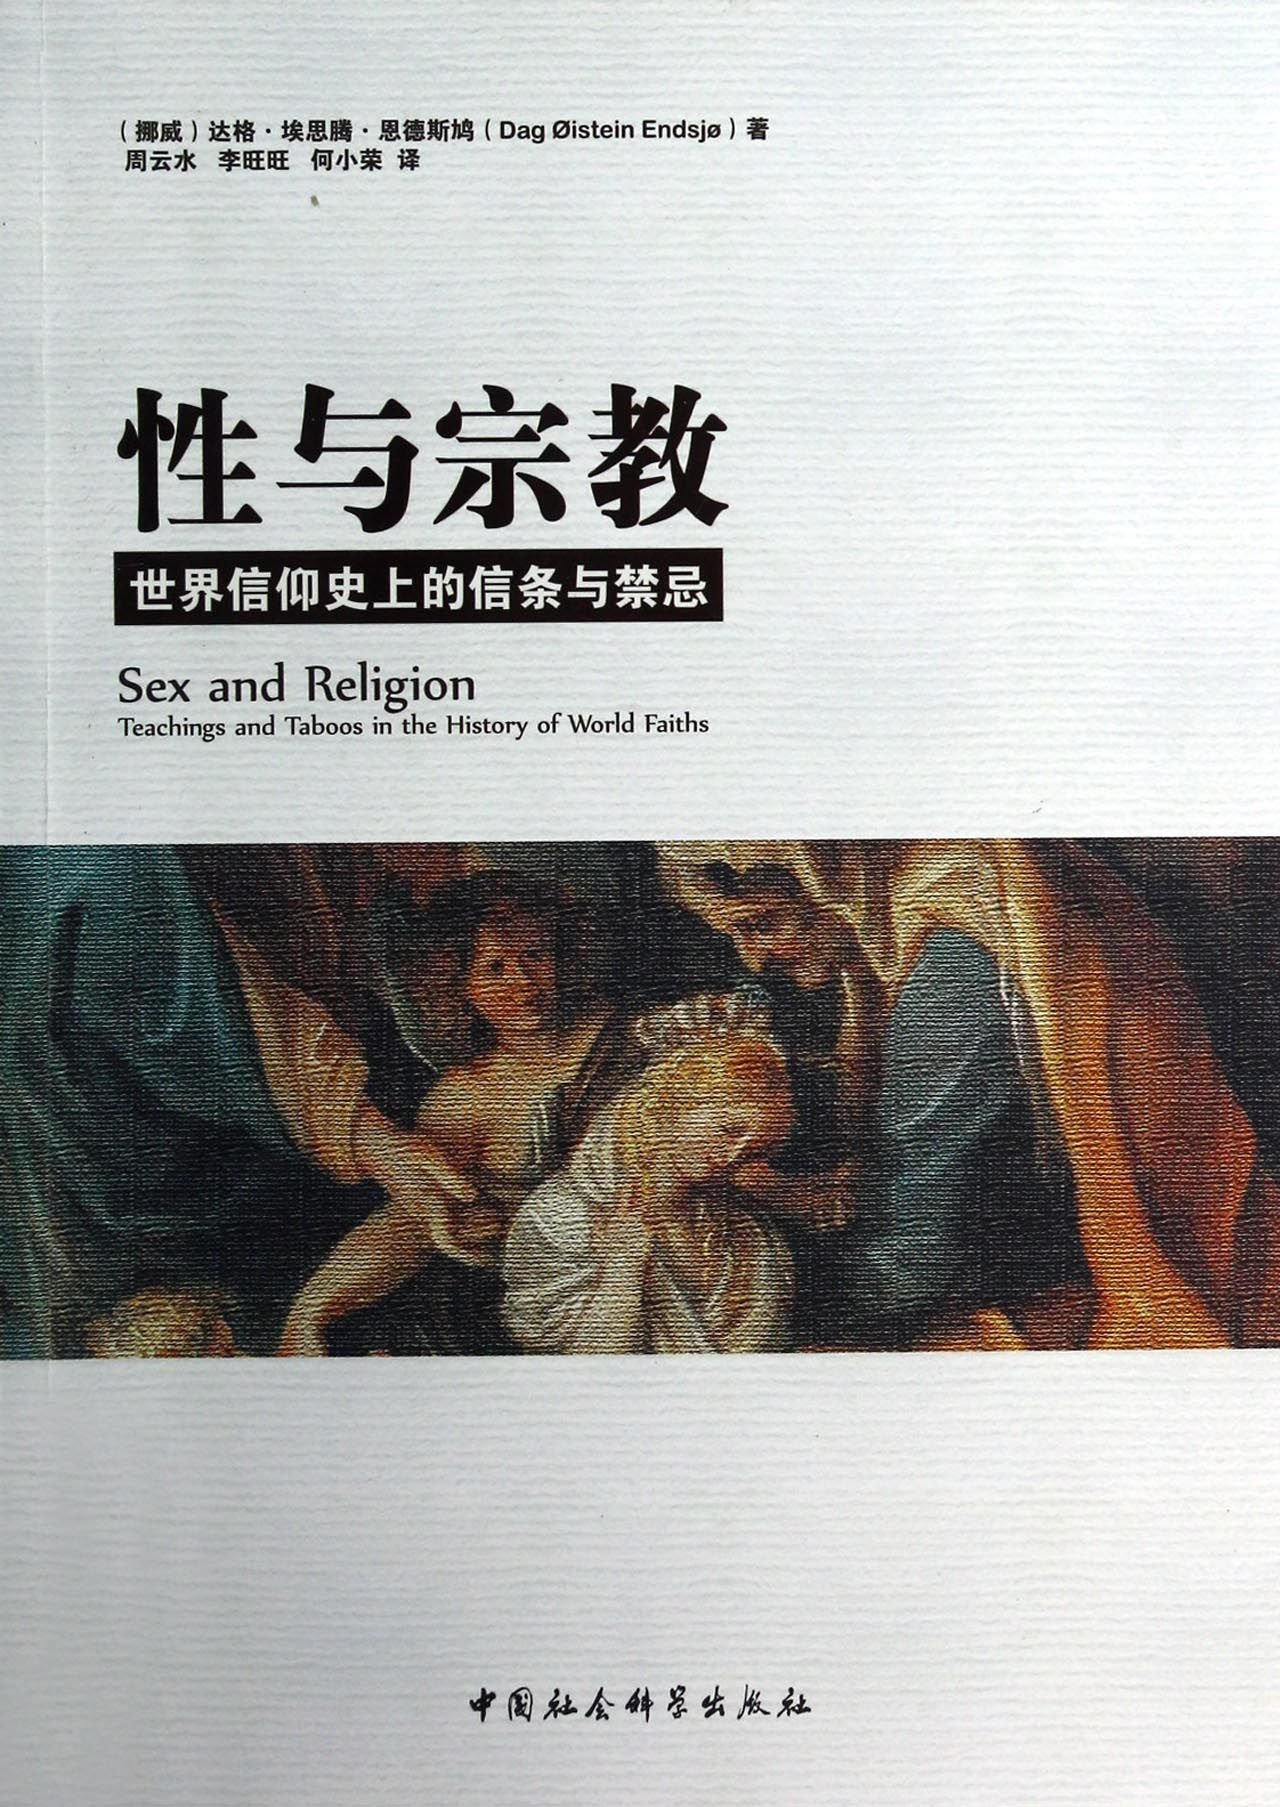 Sex and Religion Teachings and Taboos in the Historv of World Faiths(Chinese Edition) ebook